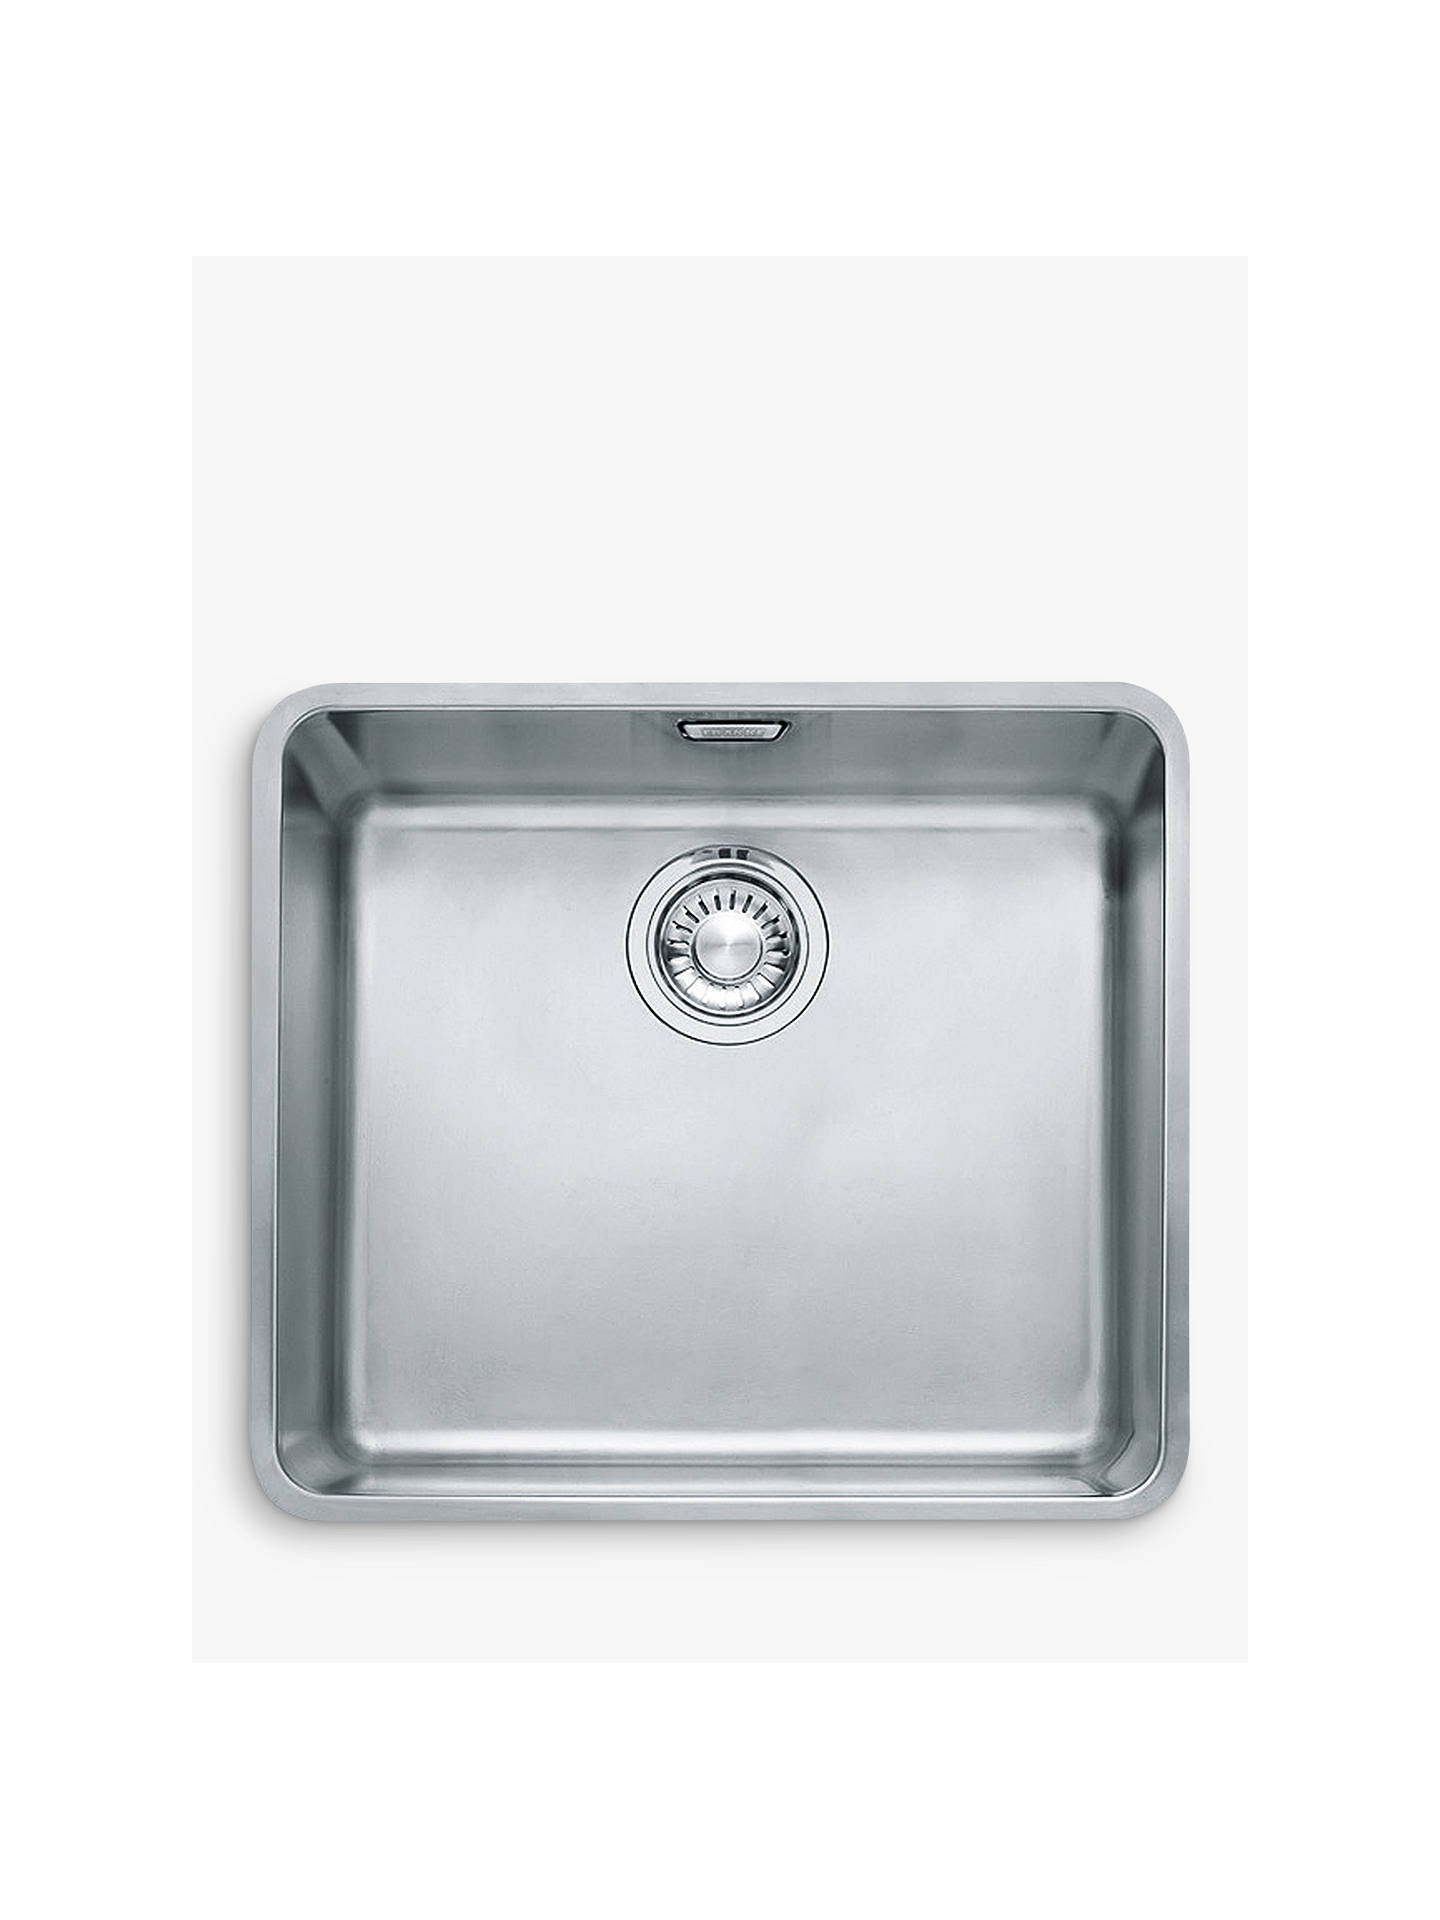 Excellent Franke Kubus Kbx 110 45 Single Bowl Undermounted Kitchen Sink Stainless Steel Home Interior And Landscaping Ologienasavecom